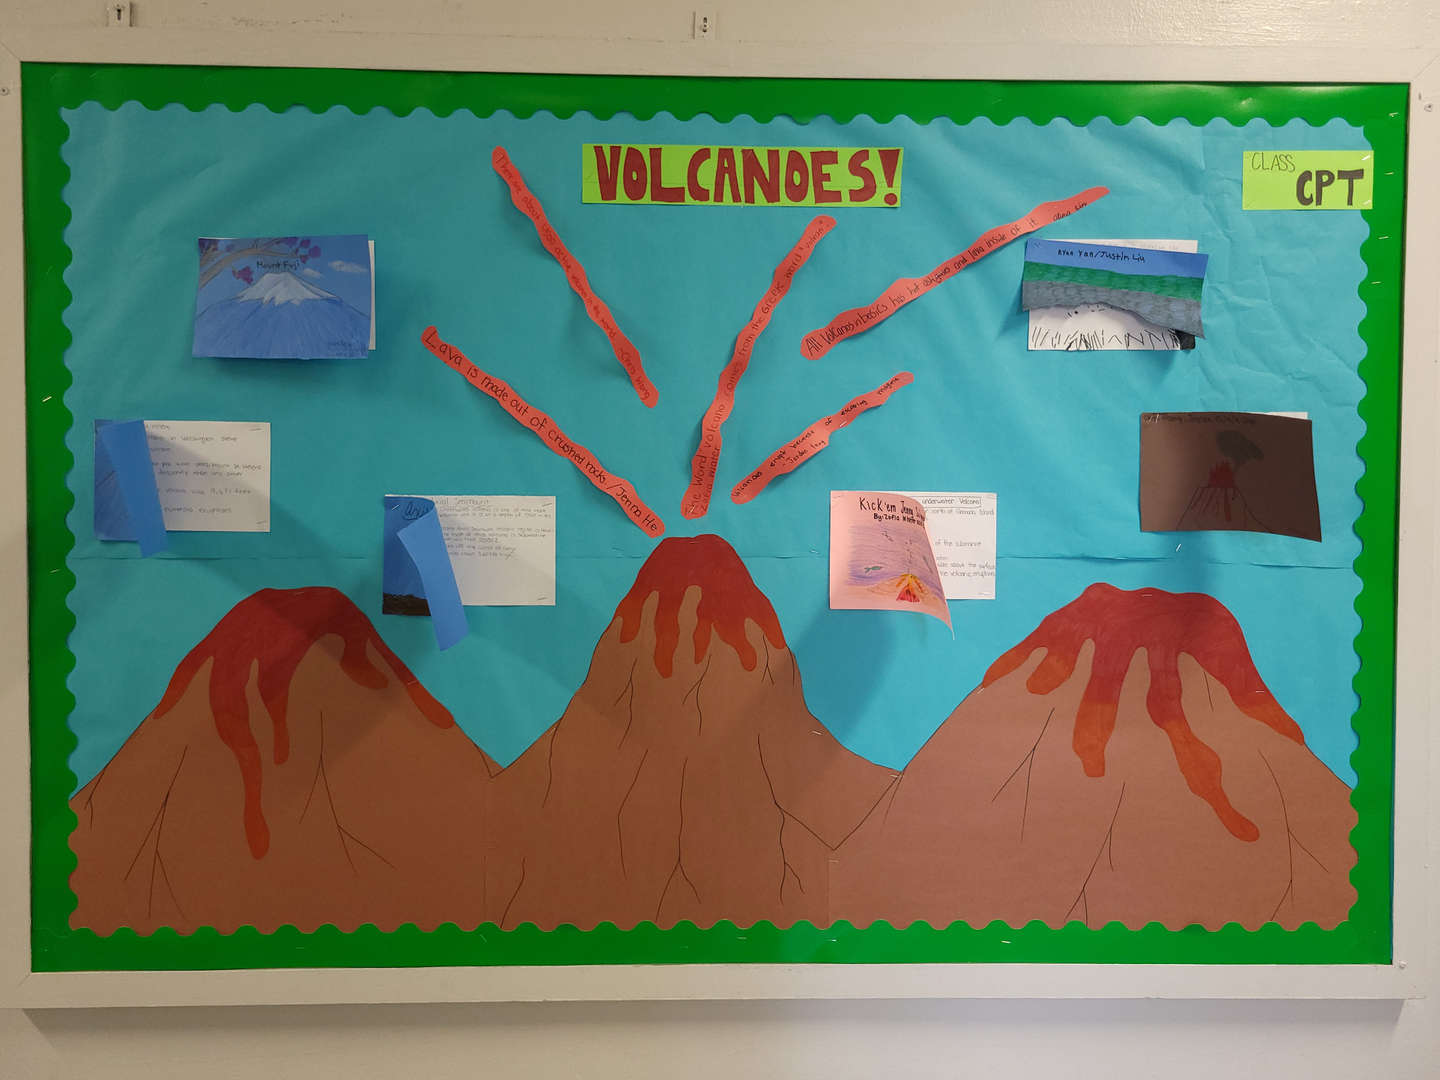 This bulletin board contains information about volcanoes.